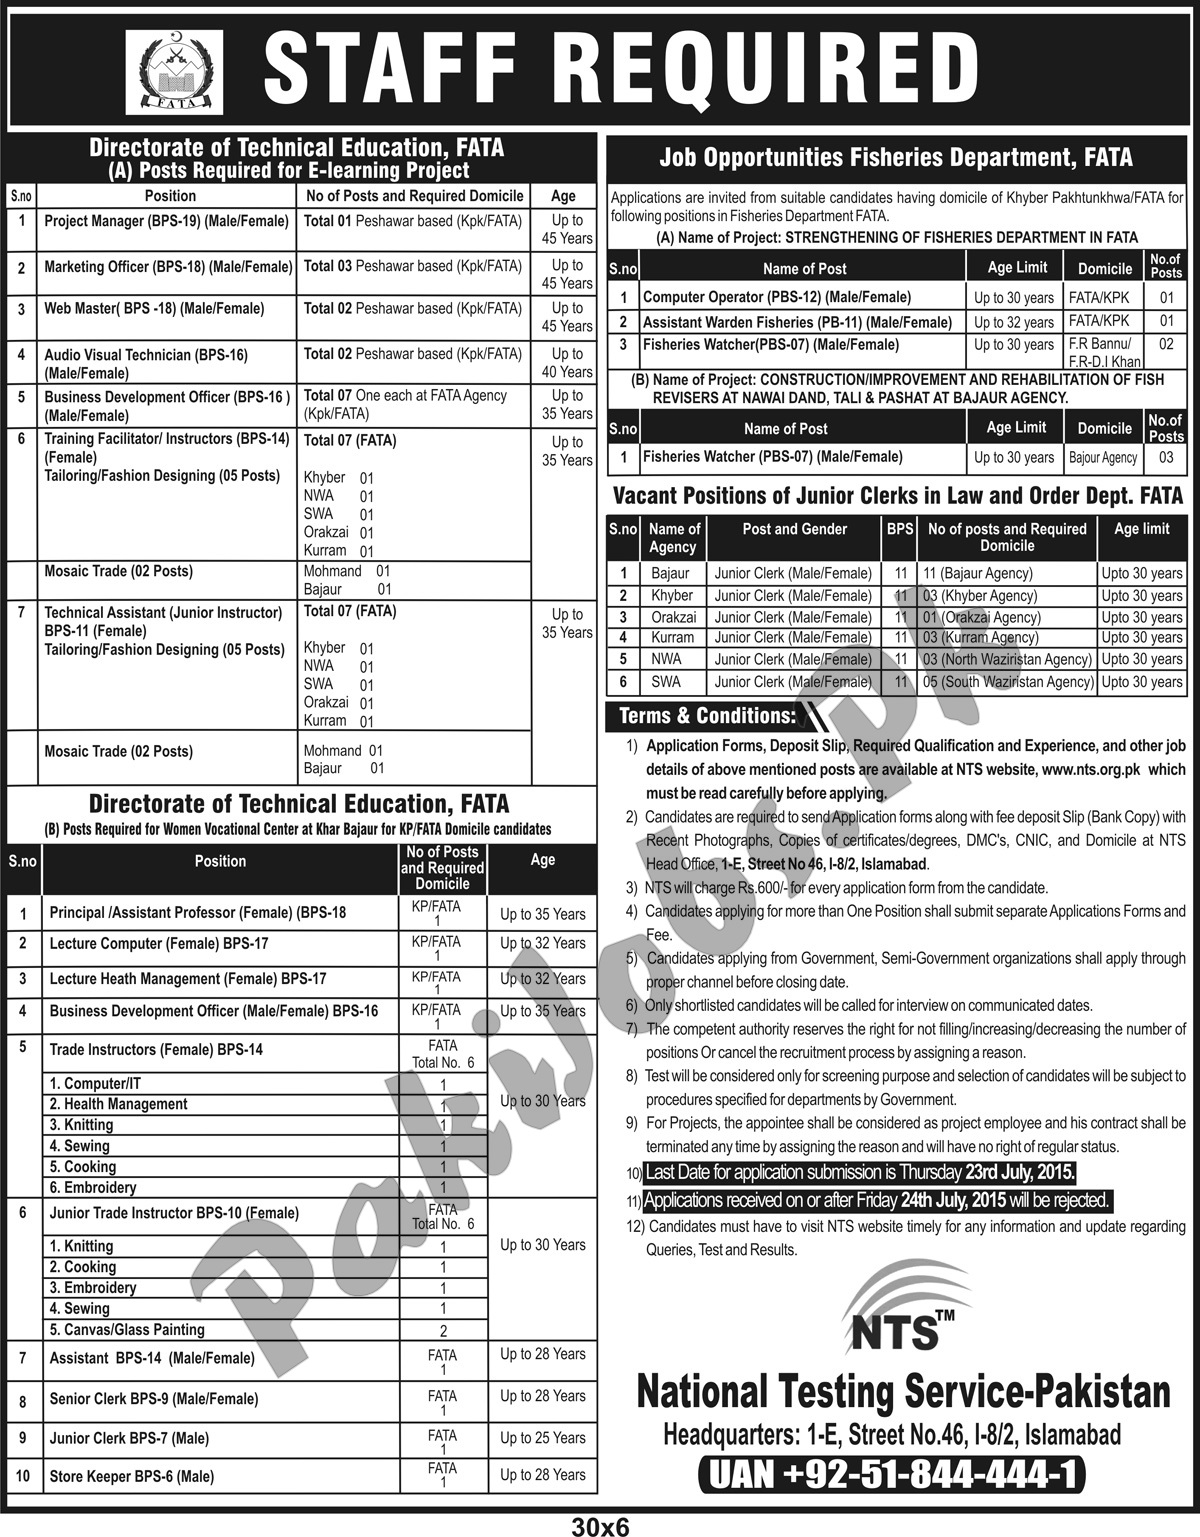 Fata-Secretariat-Peshawar-Jobs-2015-Phase-3-NTS-Application-Form Job Application Form Punjab Food Authority on retail job application, women job application, hotel job application, author job application, bar job application, electric job application, messy job application, hospital job application, farm job application, stock job application, in n out job application, finished job application, first job application, hospitality job application, baby care job application, cat job application, computer job application, golf job application, animated job application, filling job application,